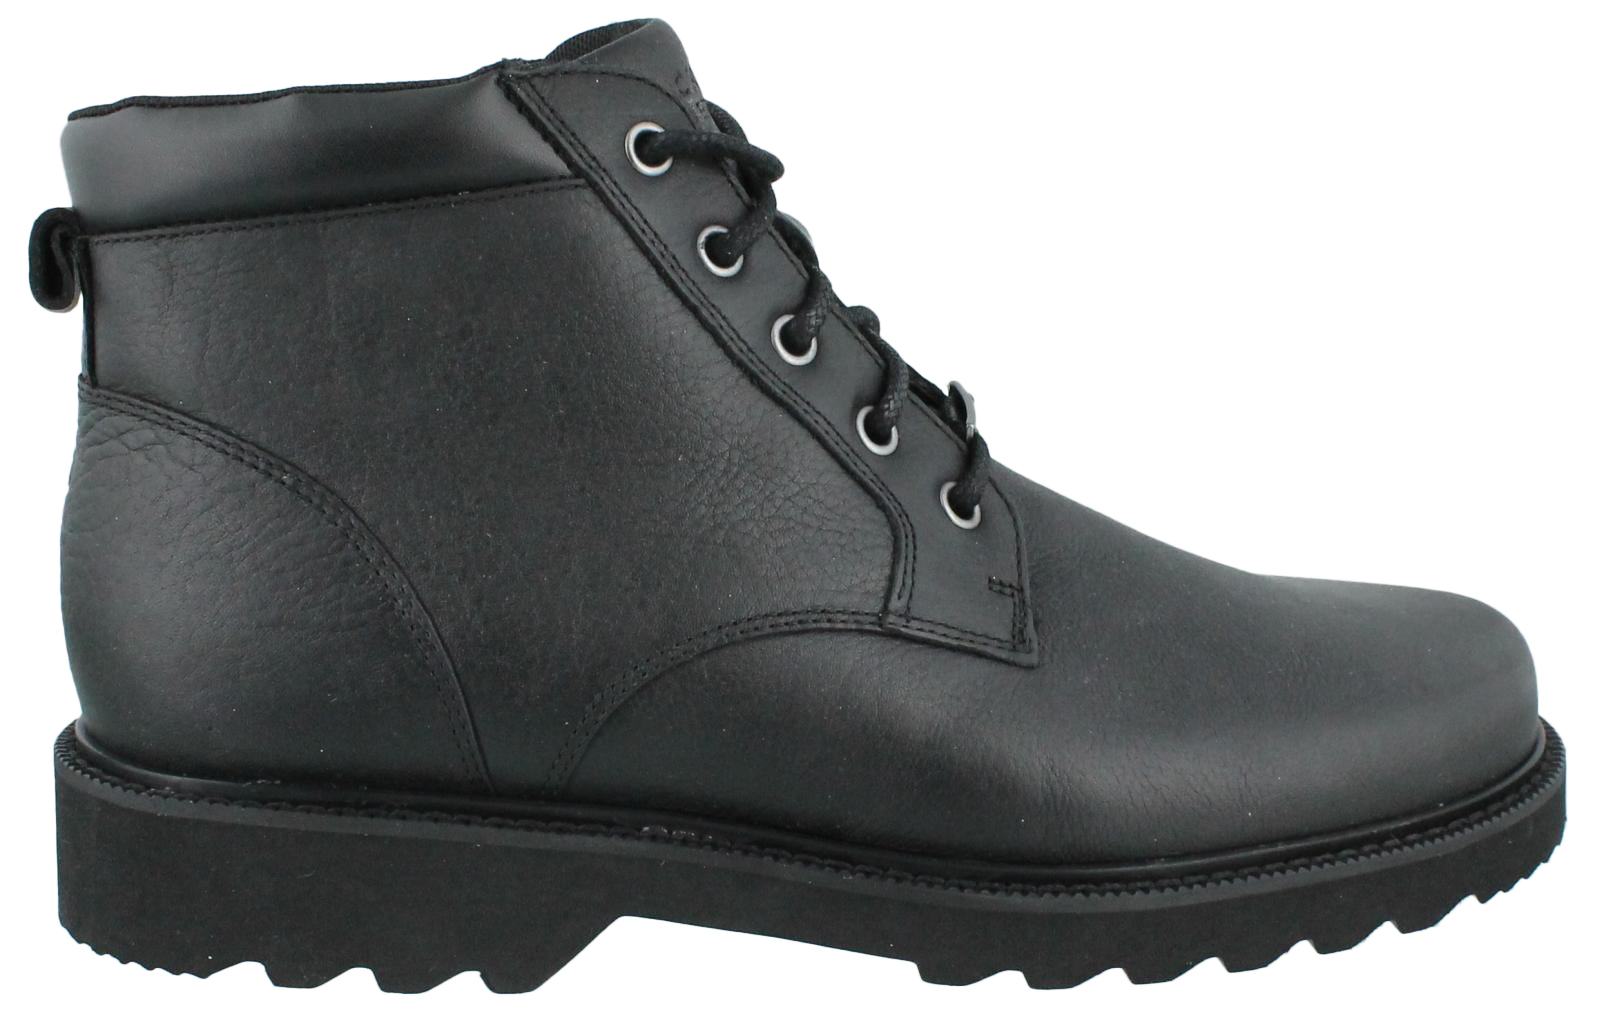 Men's Rockport, Northfield Plain Toe ankle boots by ROCKPORT